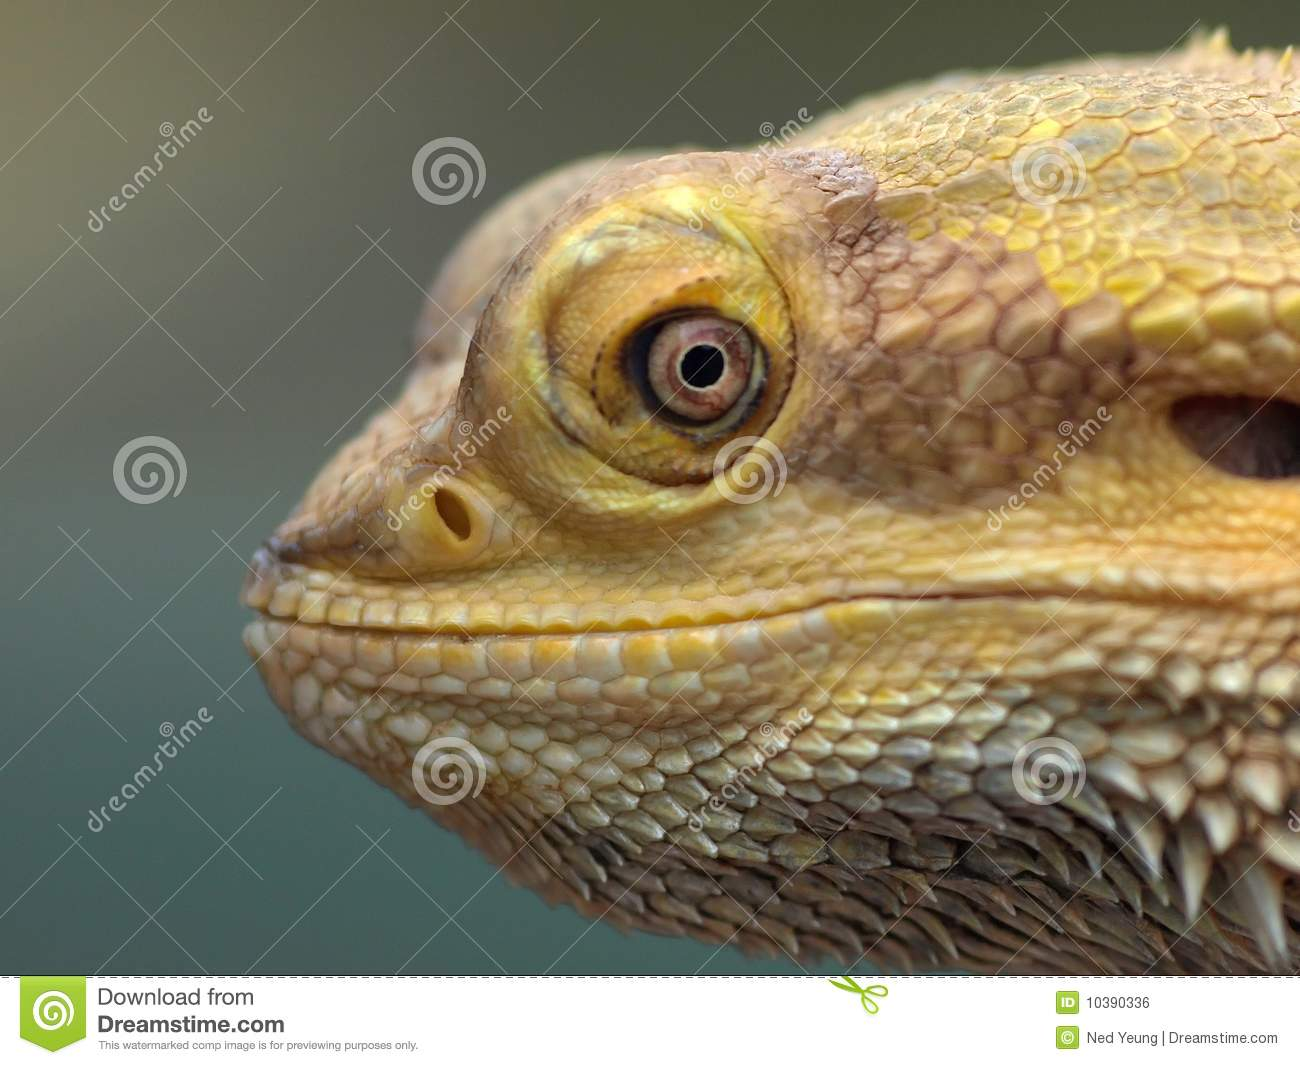 Smiling bearded dragon lizard.